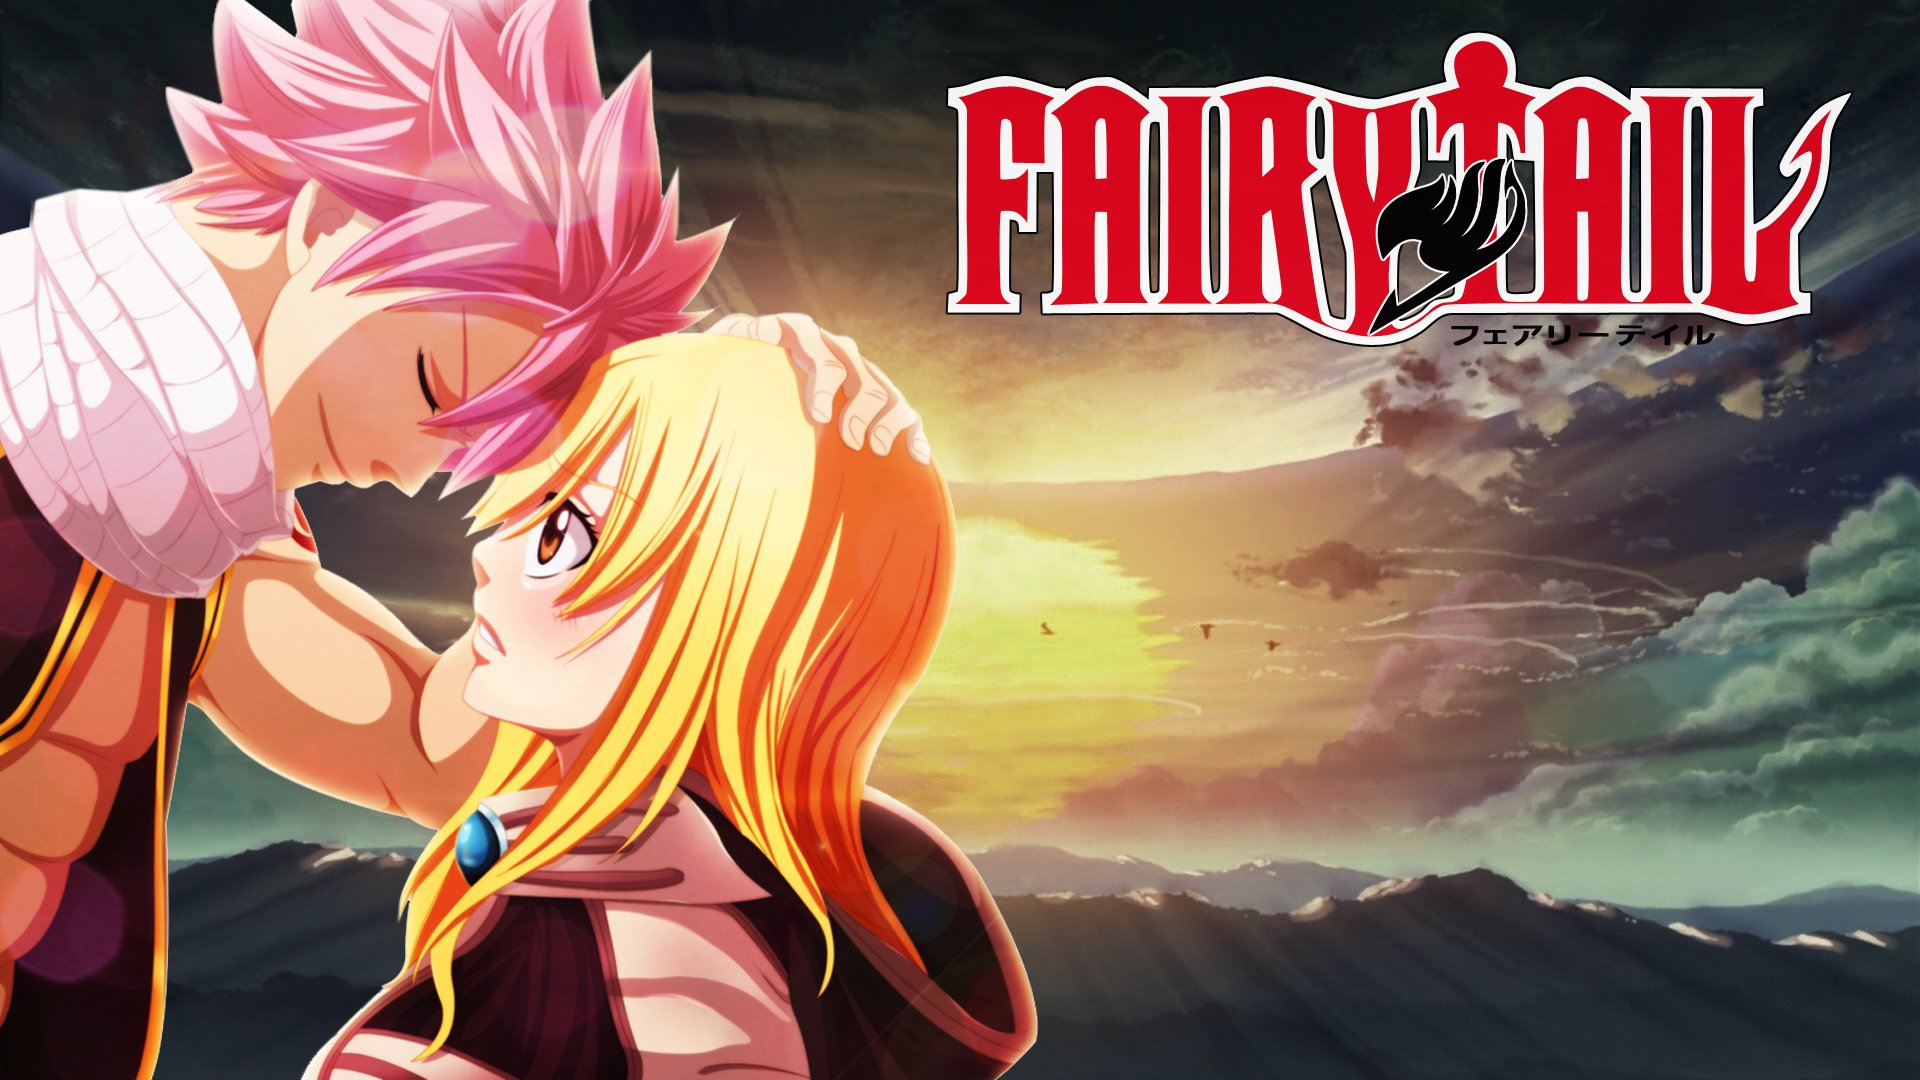 FAIRY TAIL d wallpaper 1920x1080 294593 WallpaperUP 1920x1080